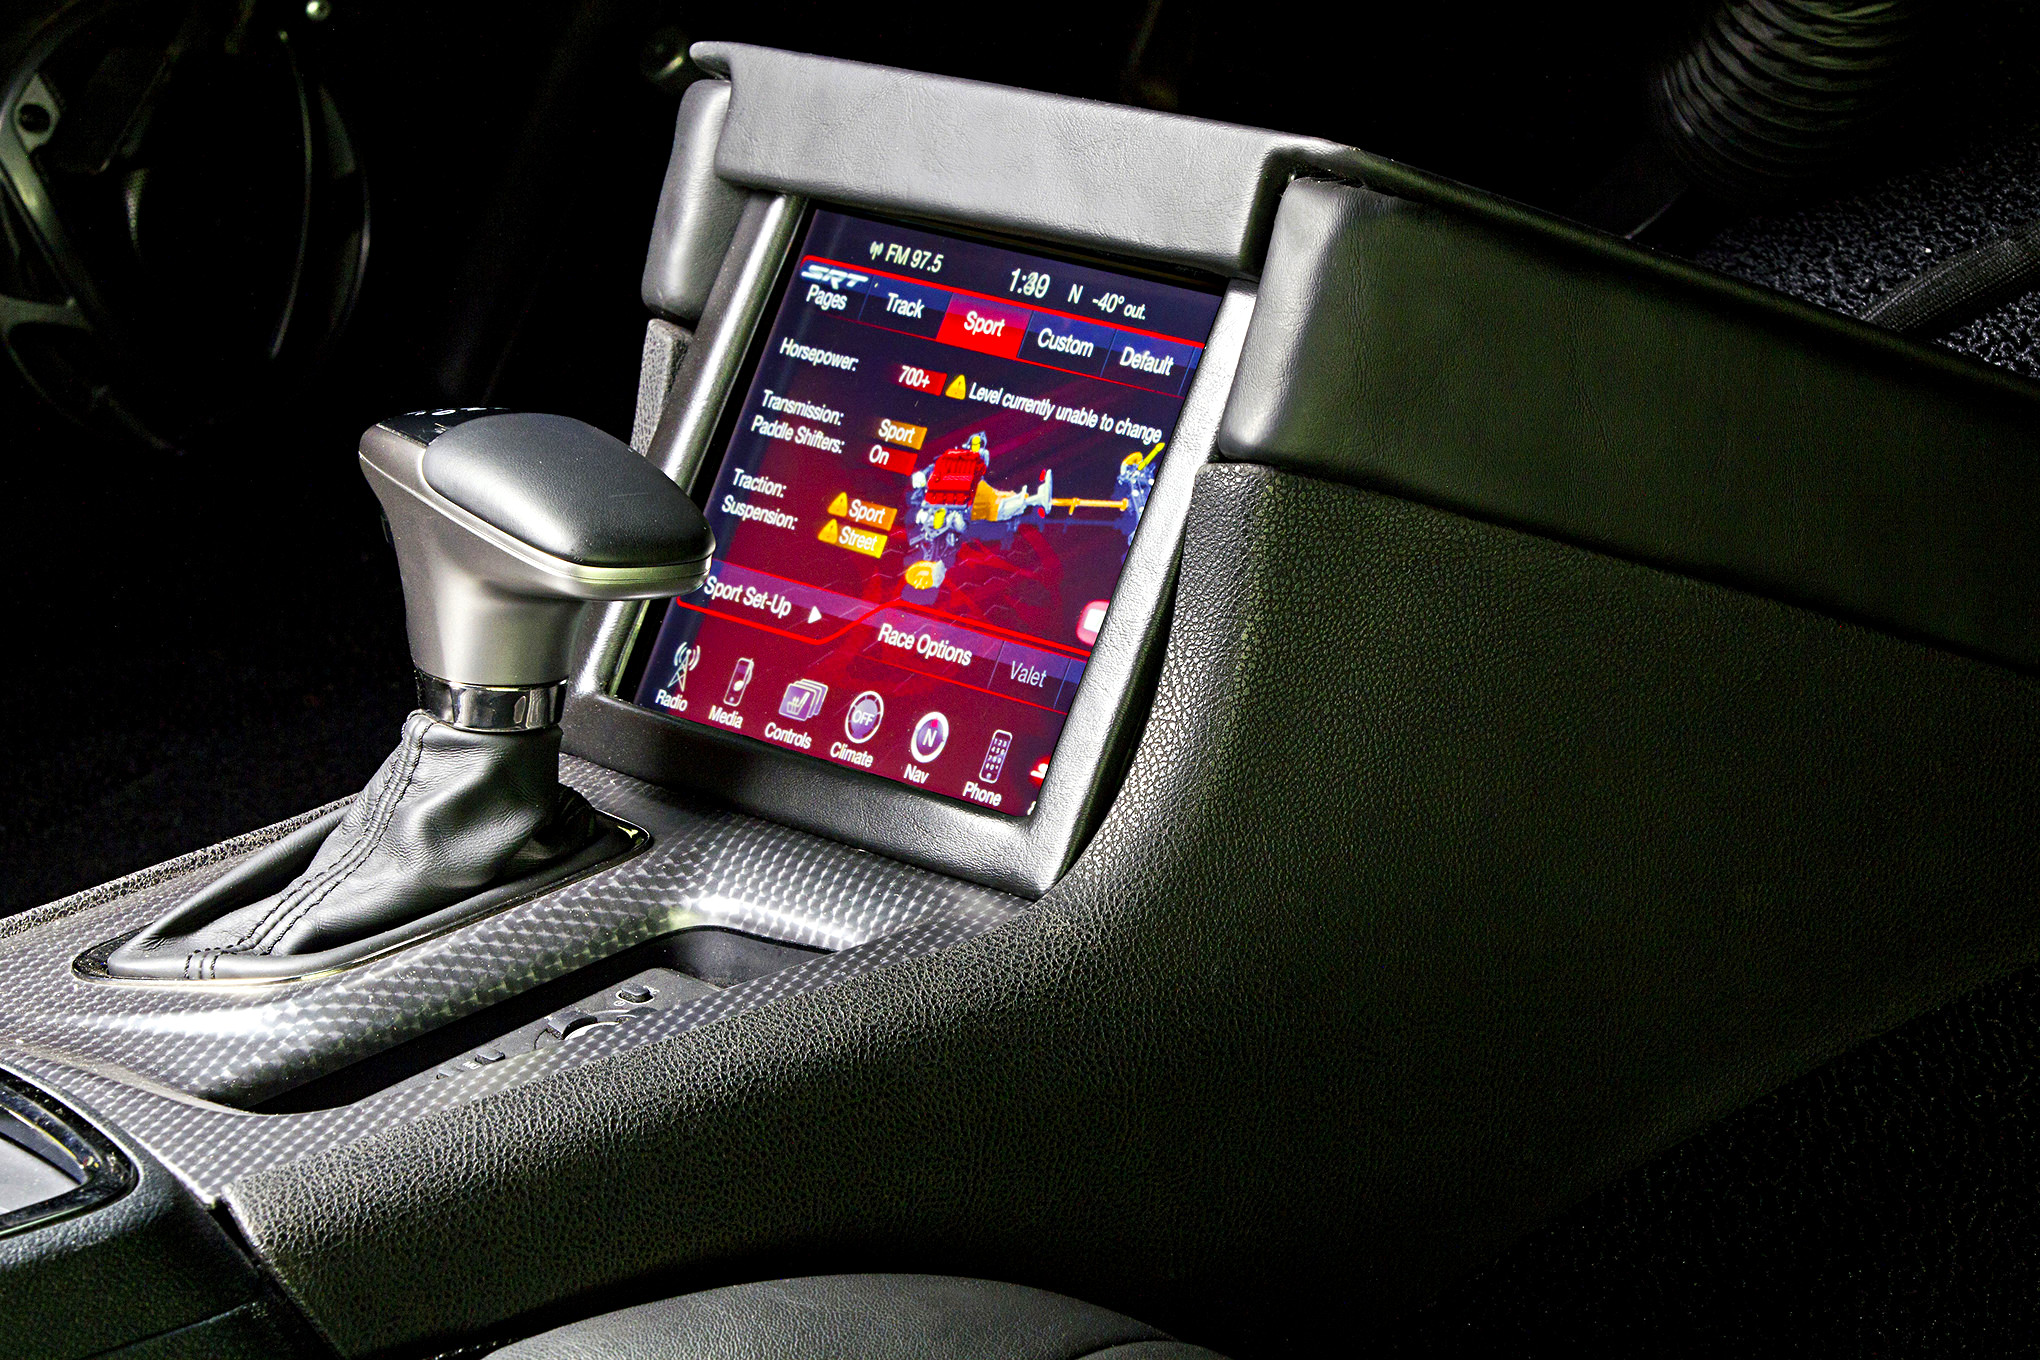 While not all factory parameters are functioning, Larry did retained the touchscreen LCD from the Hellcat which allows selection of performance modes.